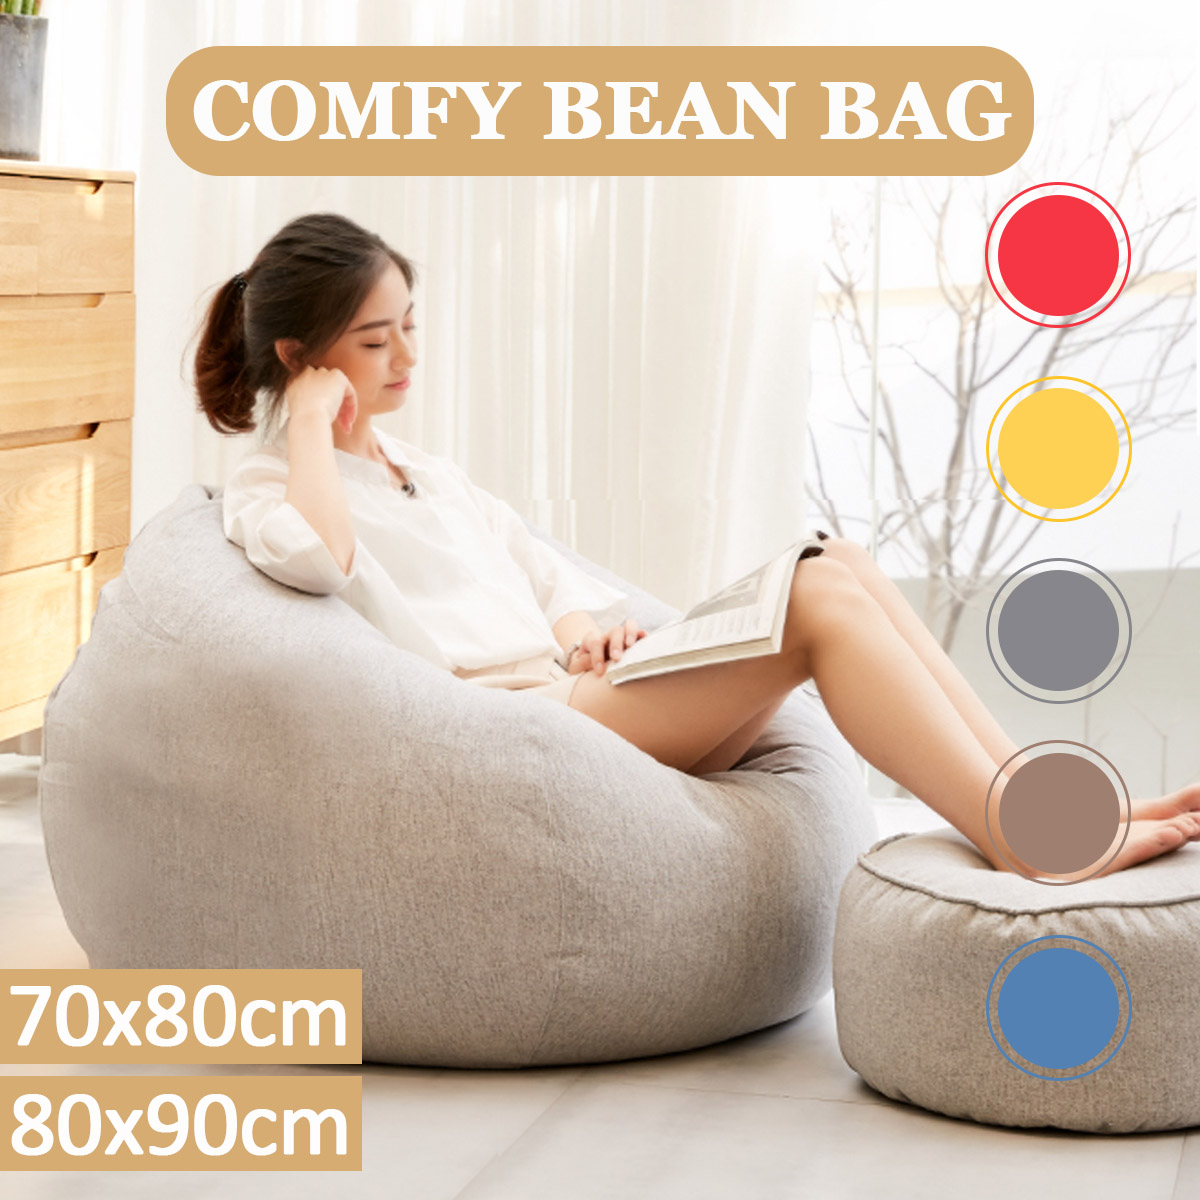 Enjoyable Large Adult Bean Bag Chair Inzonedesignstudio Interior Chair Design Inzonedesignstudiocom